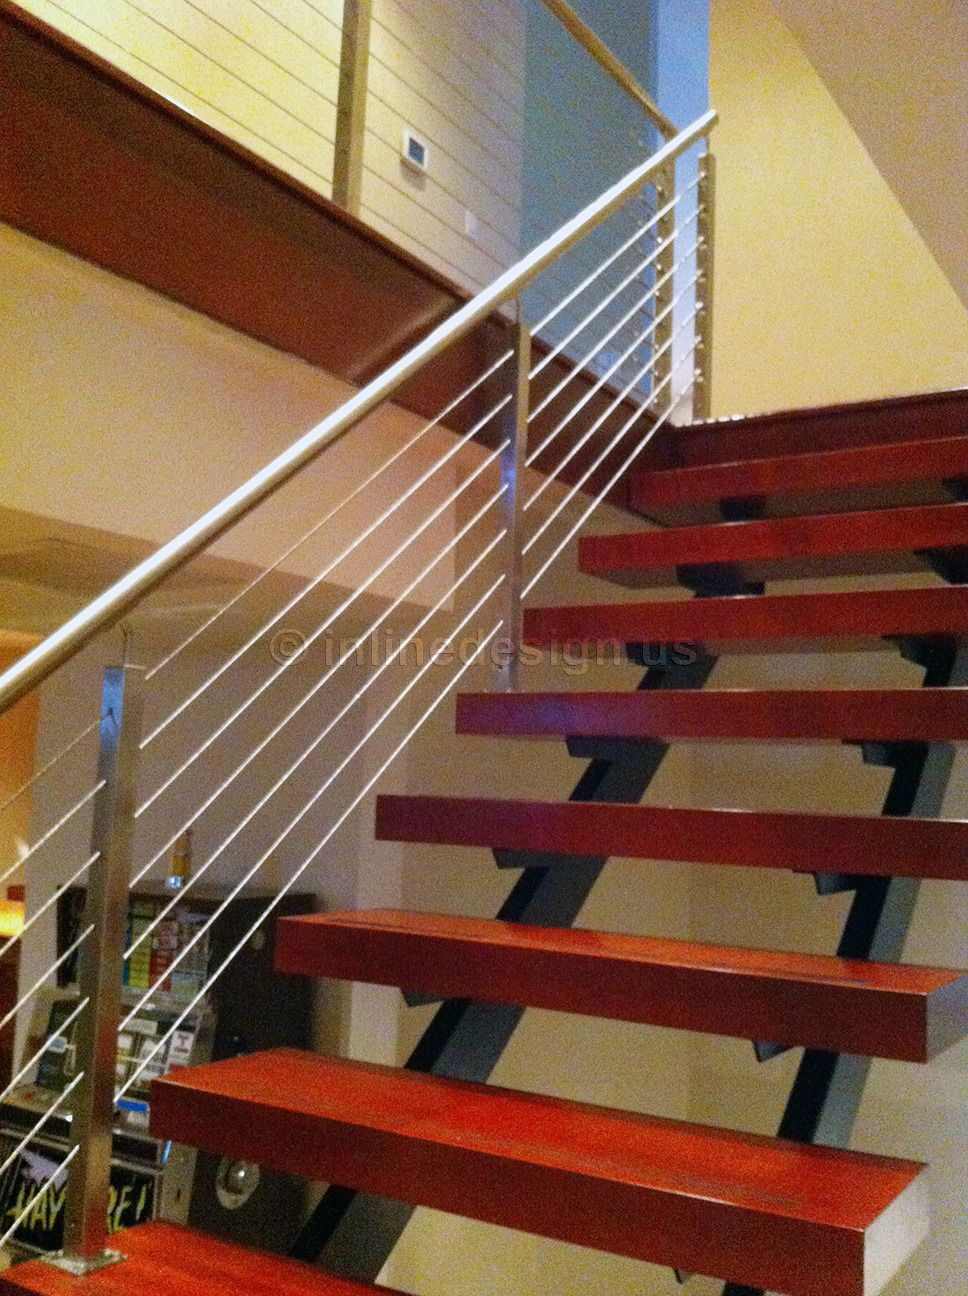 Black Steel Spine Stainless Rails Wooden Steps Single